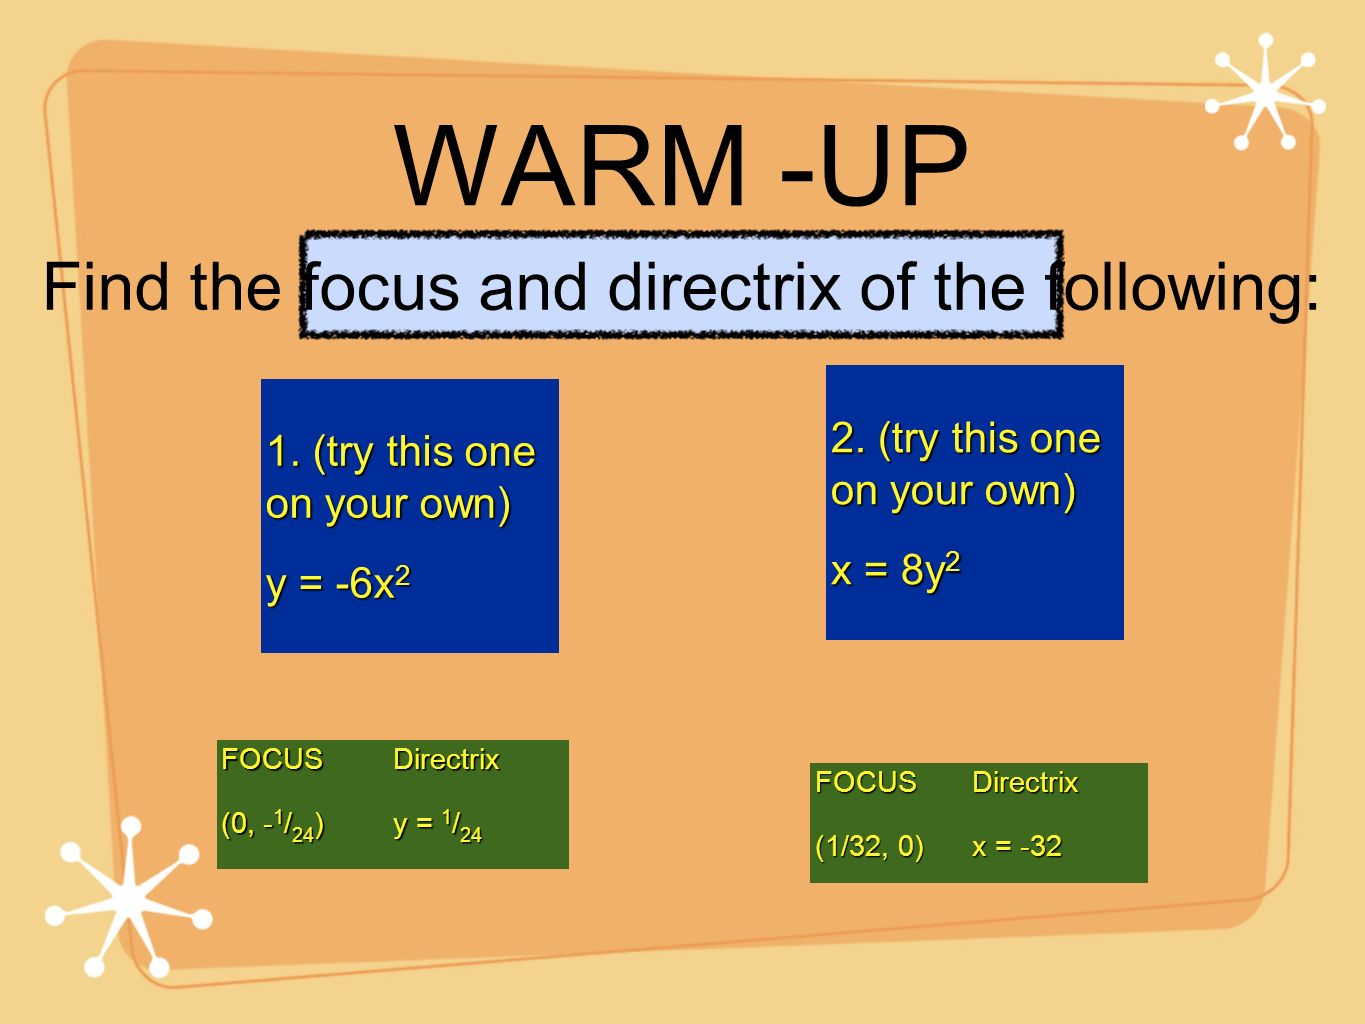 WARM -UP 1. (try this one on your own) y = -6x 2 FOCUS (0, - 1 / 24 ) Directrix y = 1 / 24 2. (try this one on your own) x = 8y 2 FOCUS (1/32, 0) Dire